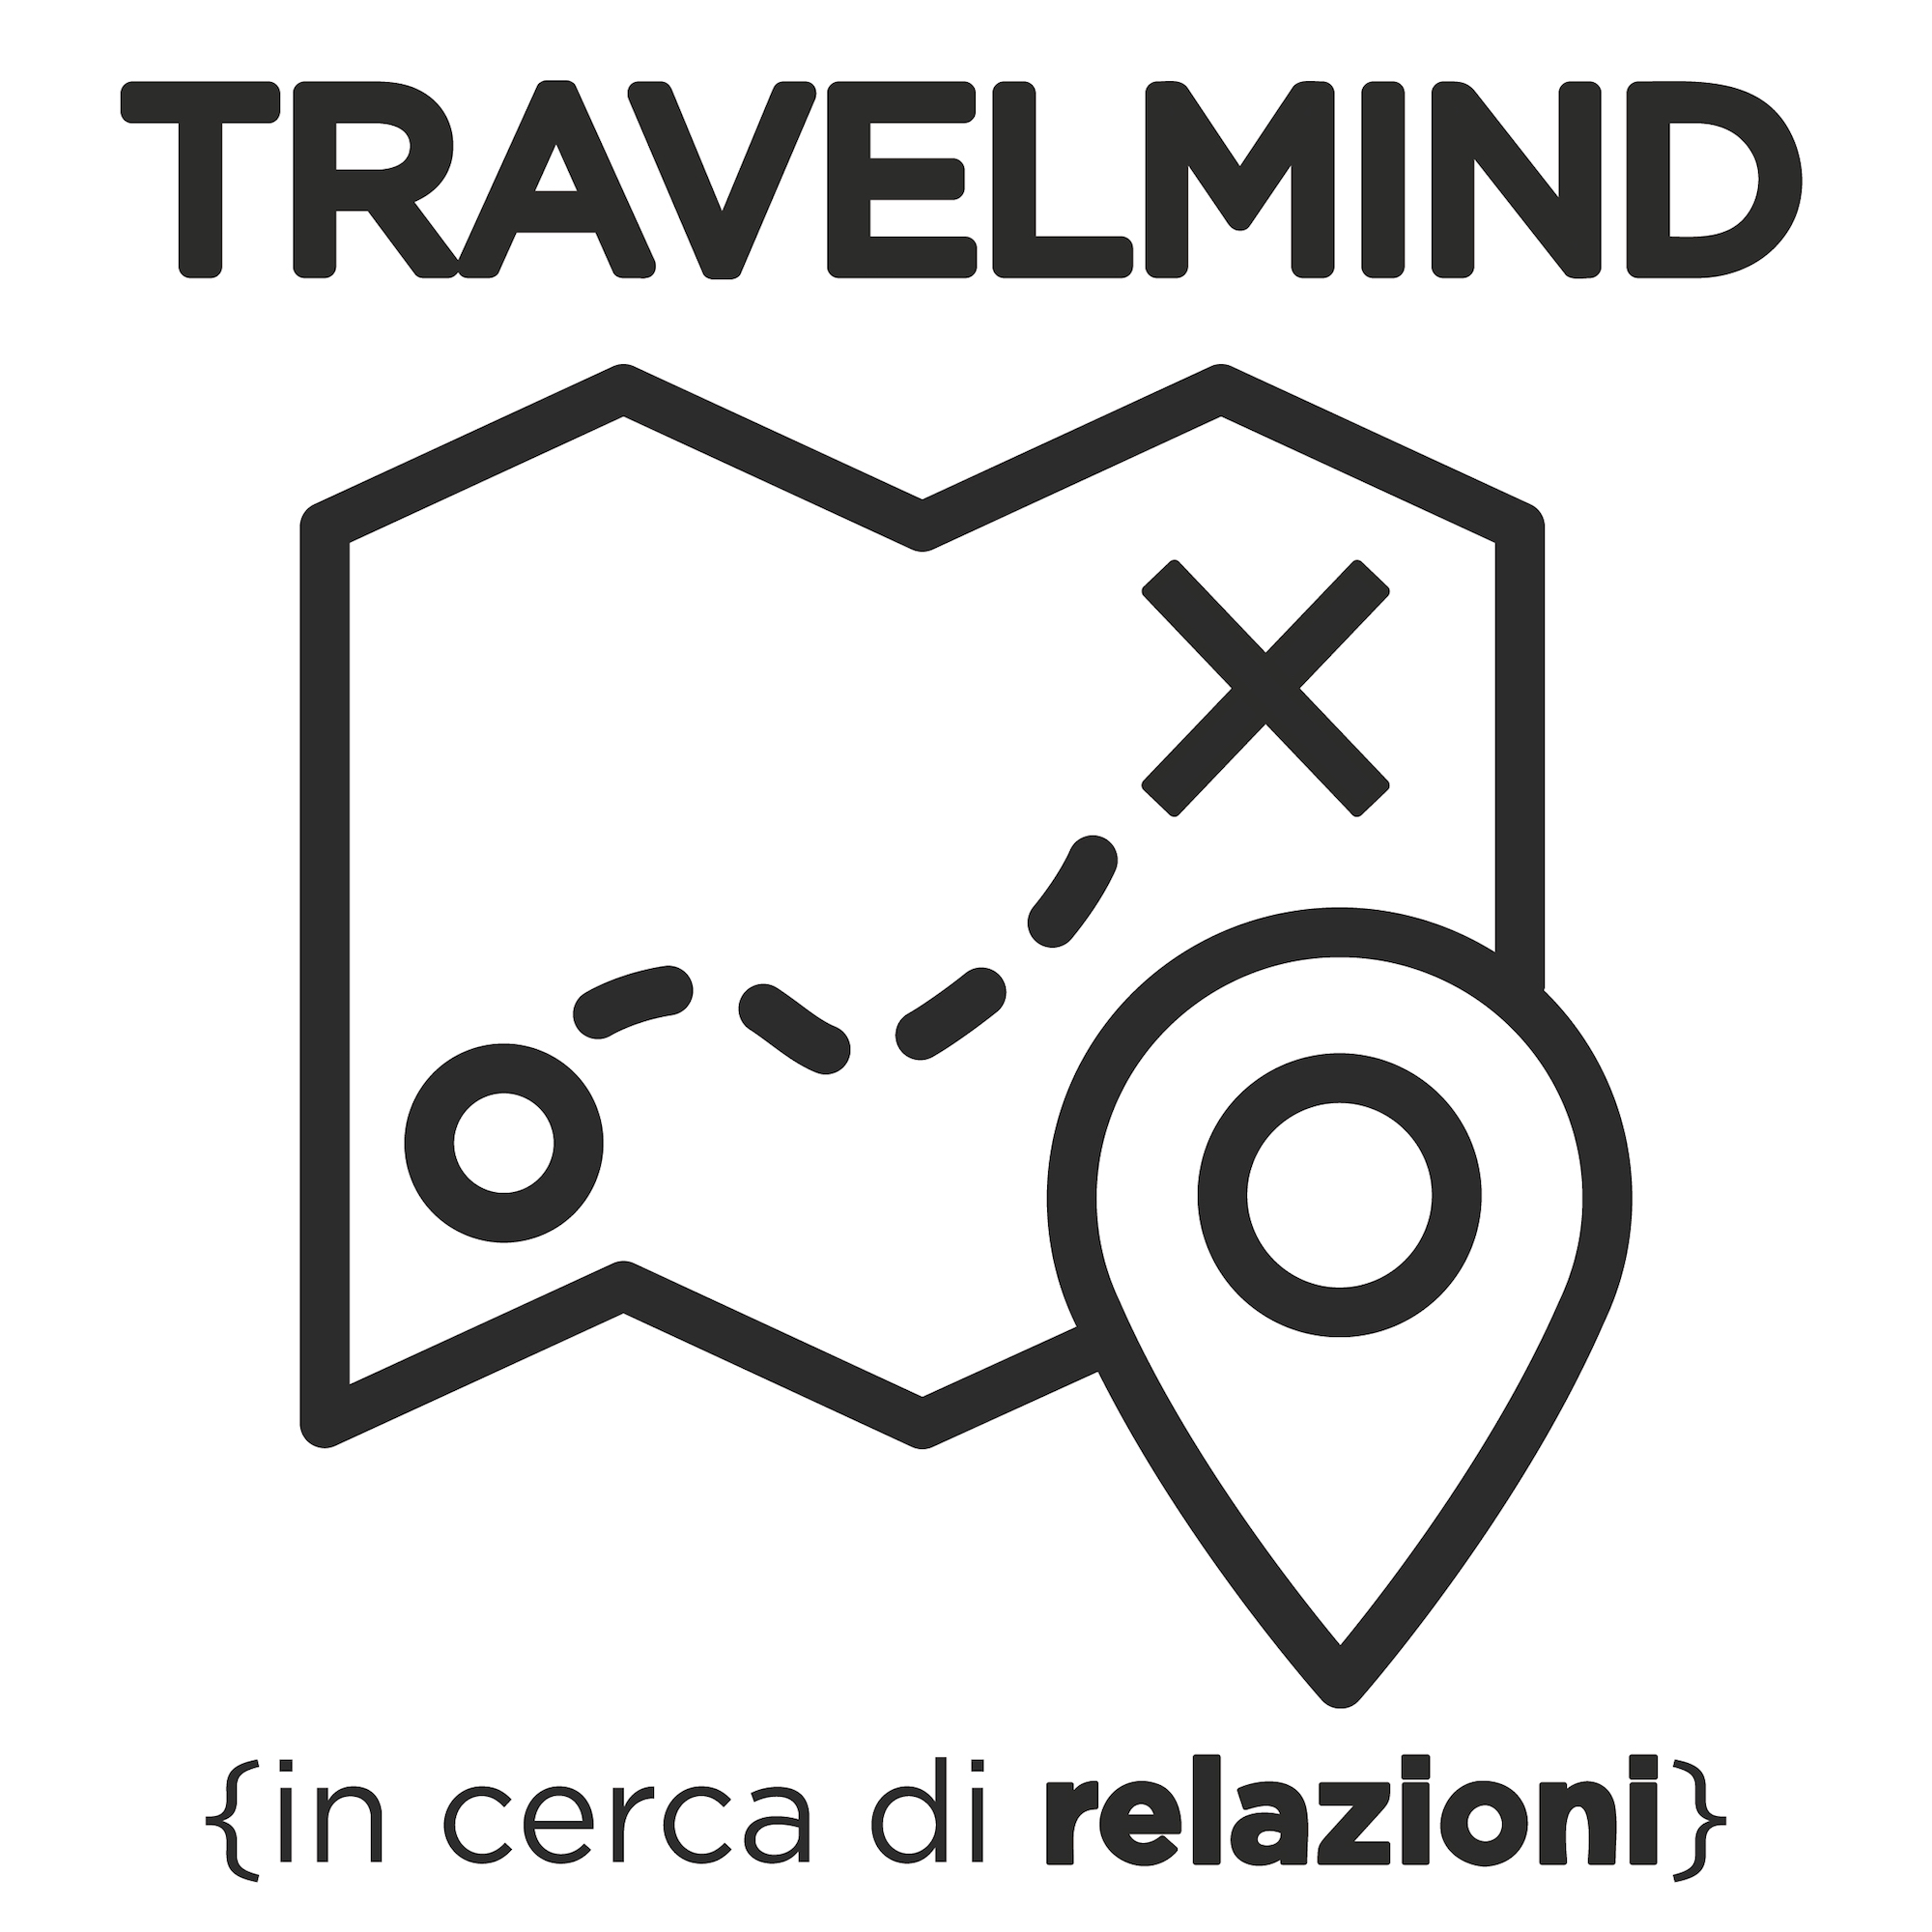 Travel Mind, logo